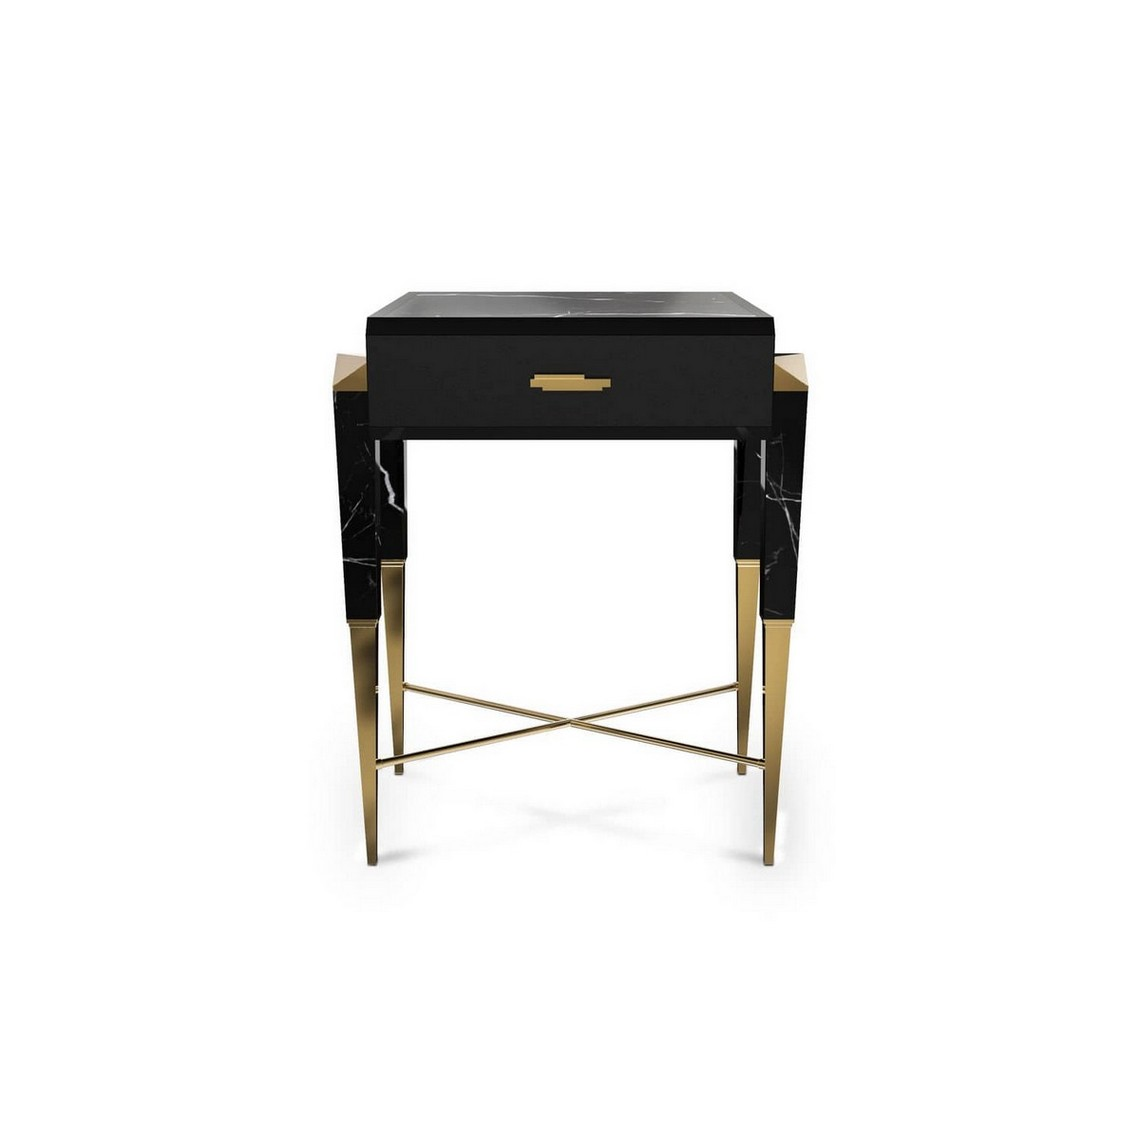 Top Living Room Side Tables side tables Top Living Room Side Tables spear2